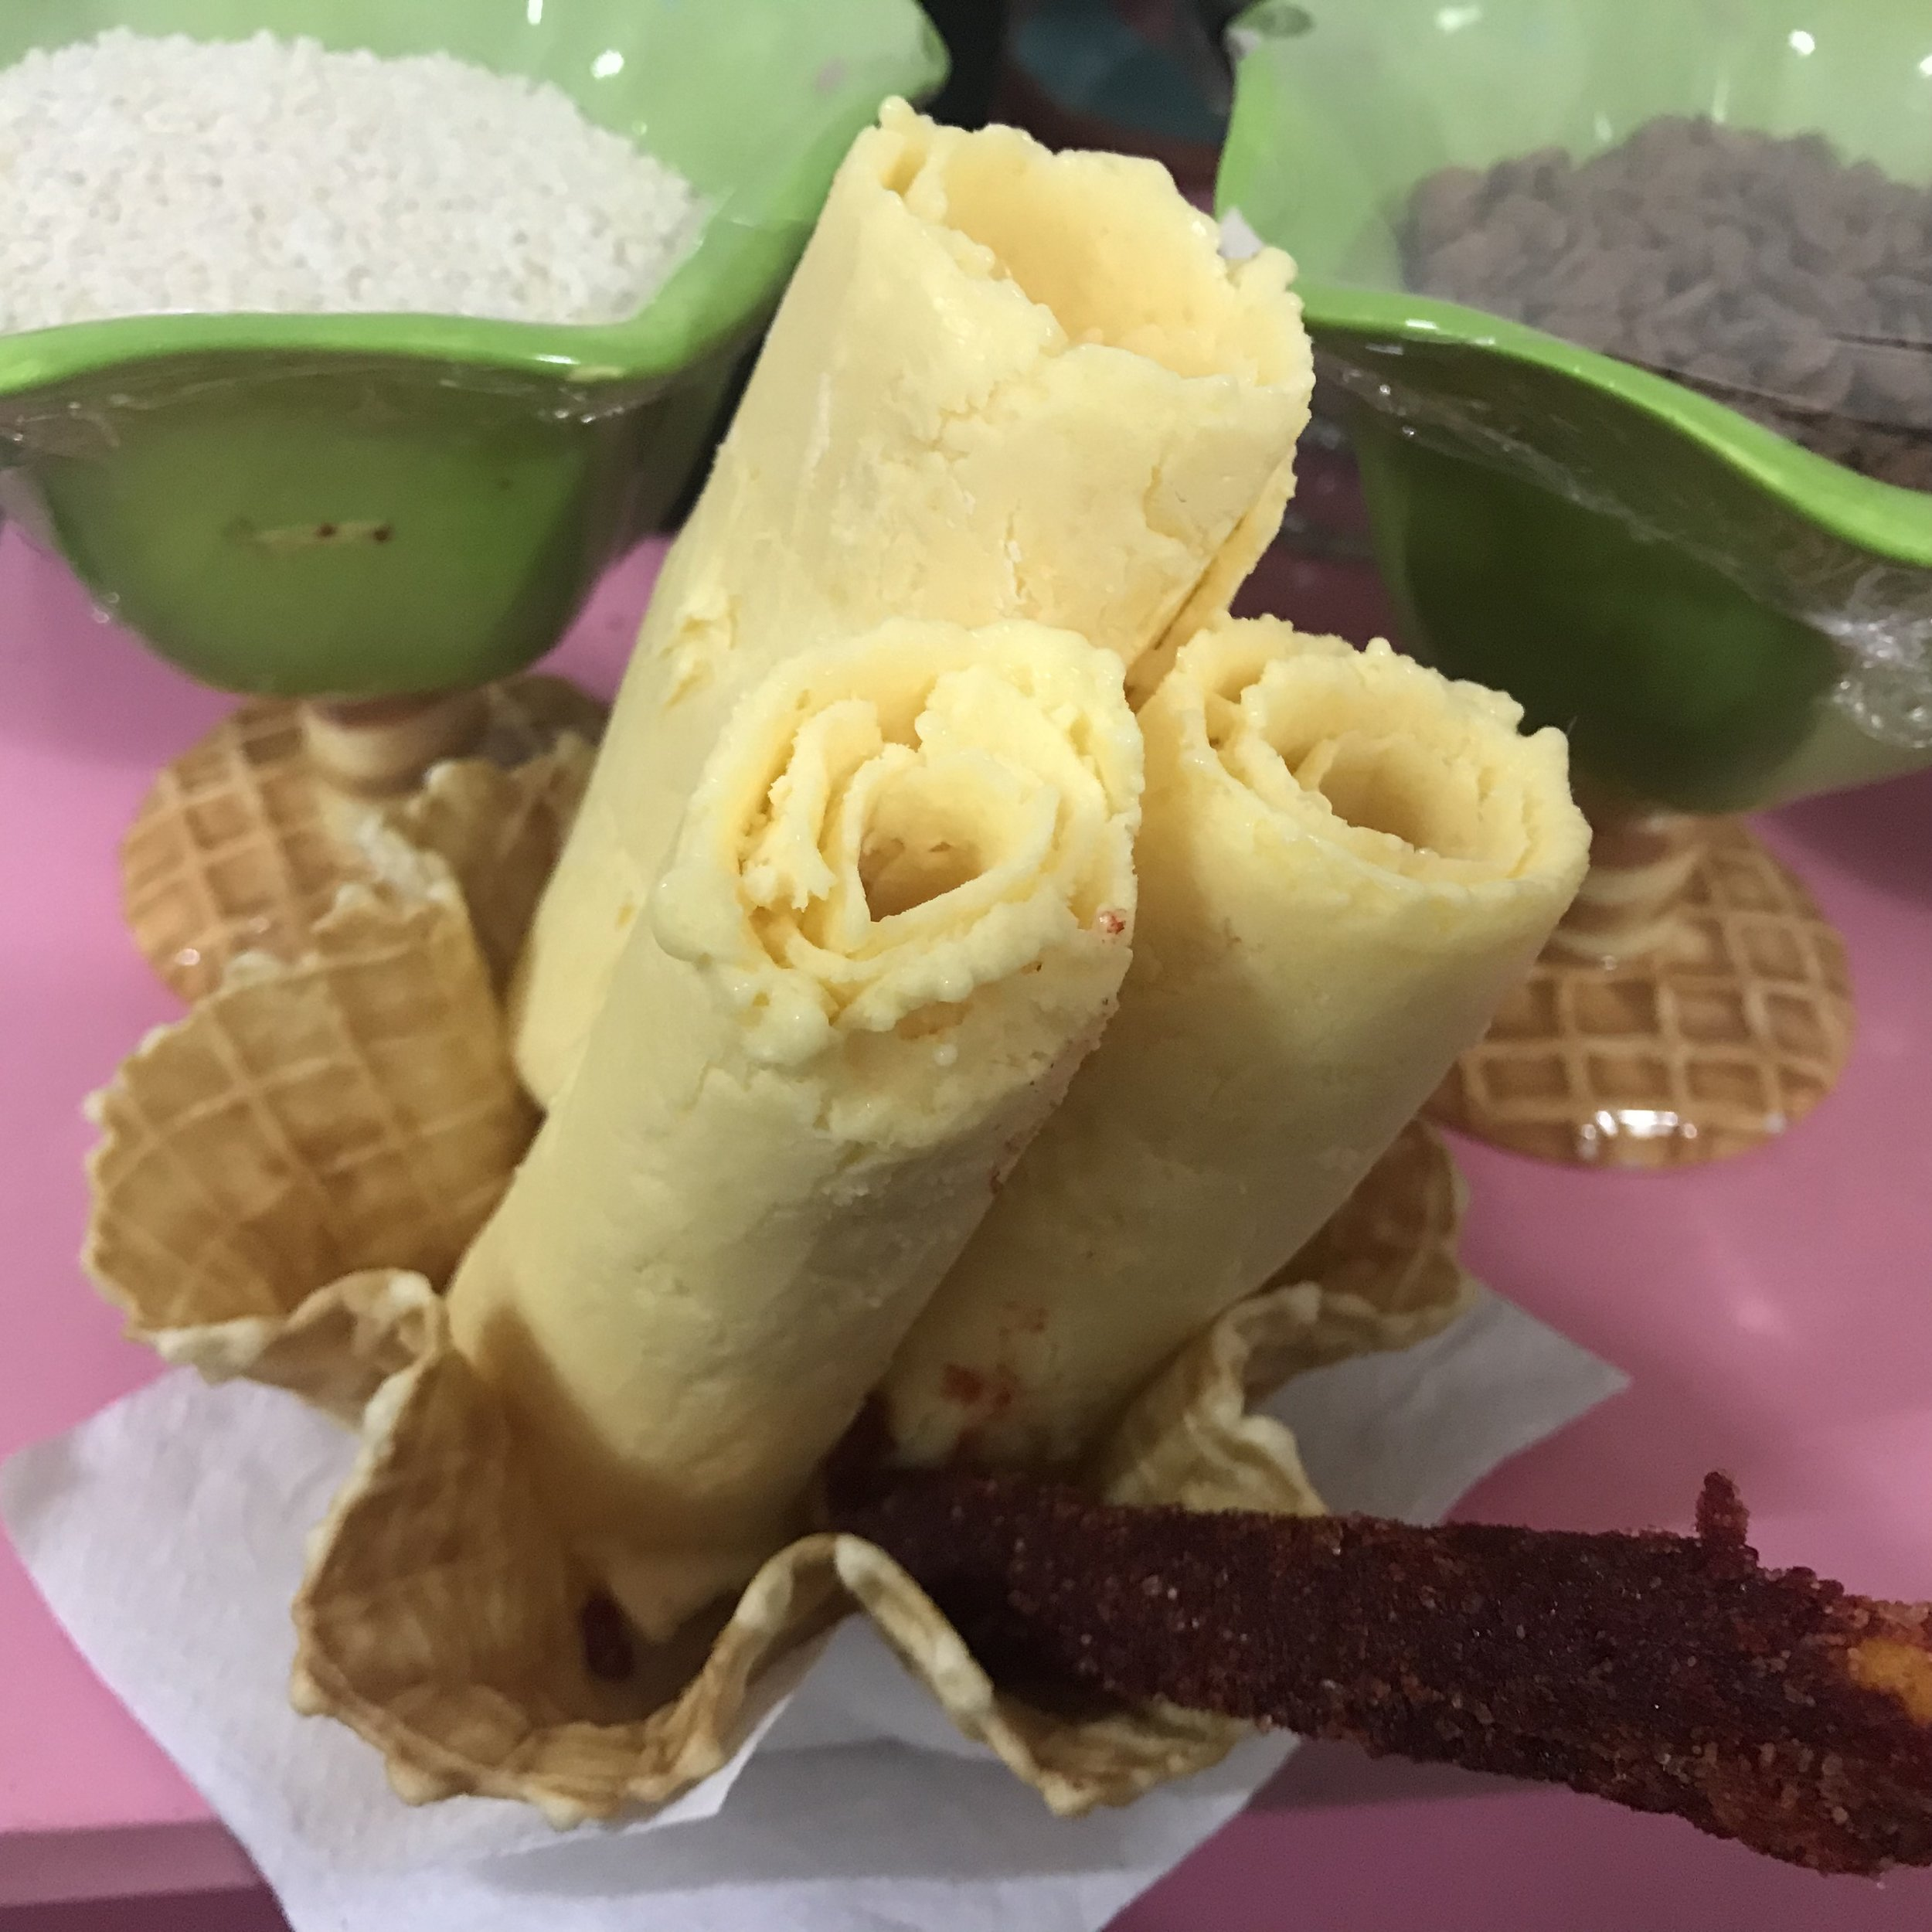 Why did this place come up as the very best ice cream in Oaxaca? After a long dark search we found the ice cream shop. It turns out it's made of soy milk in this super strange process. Not good at all!